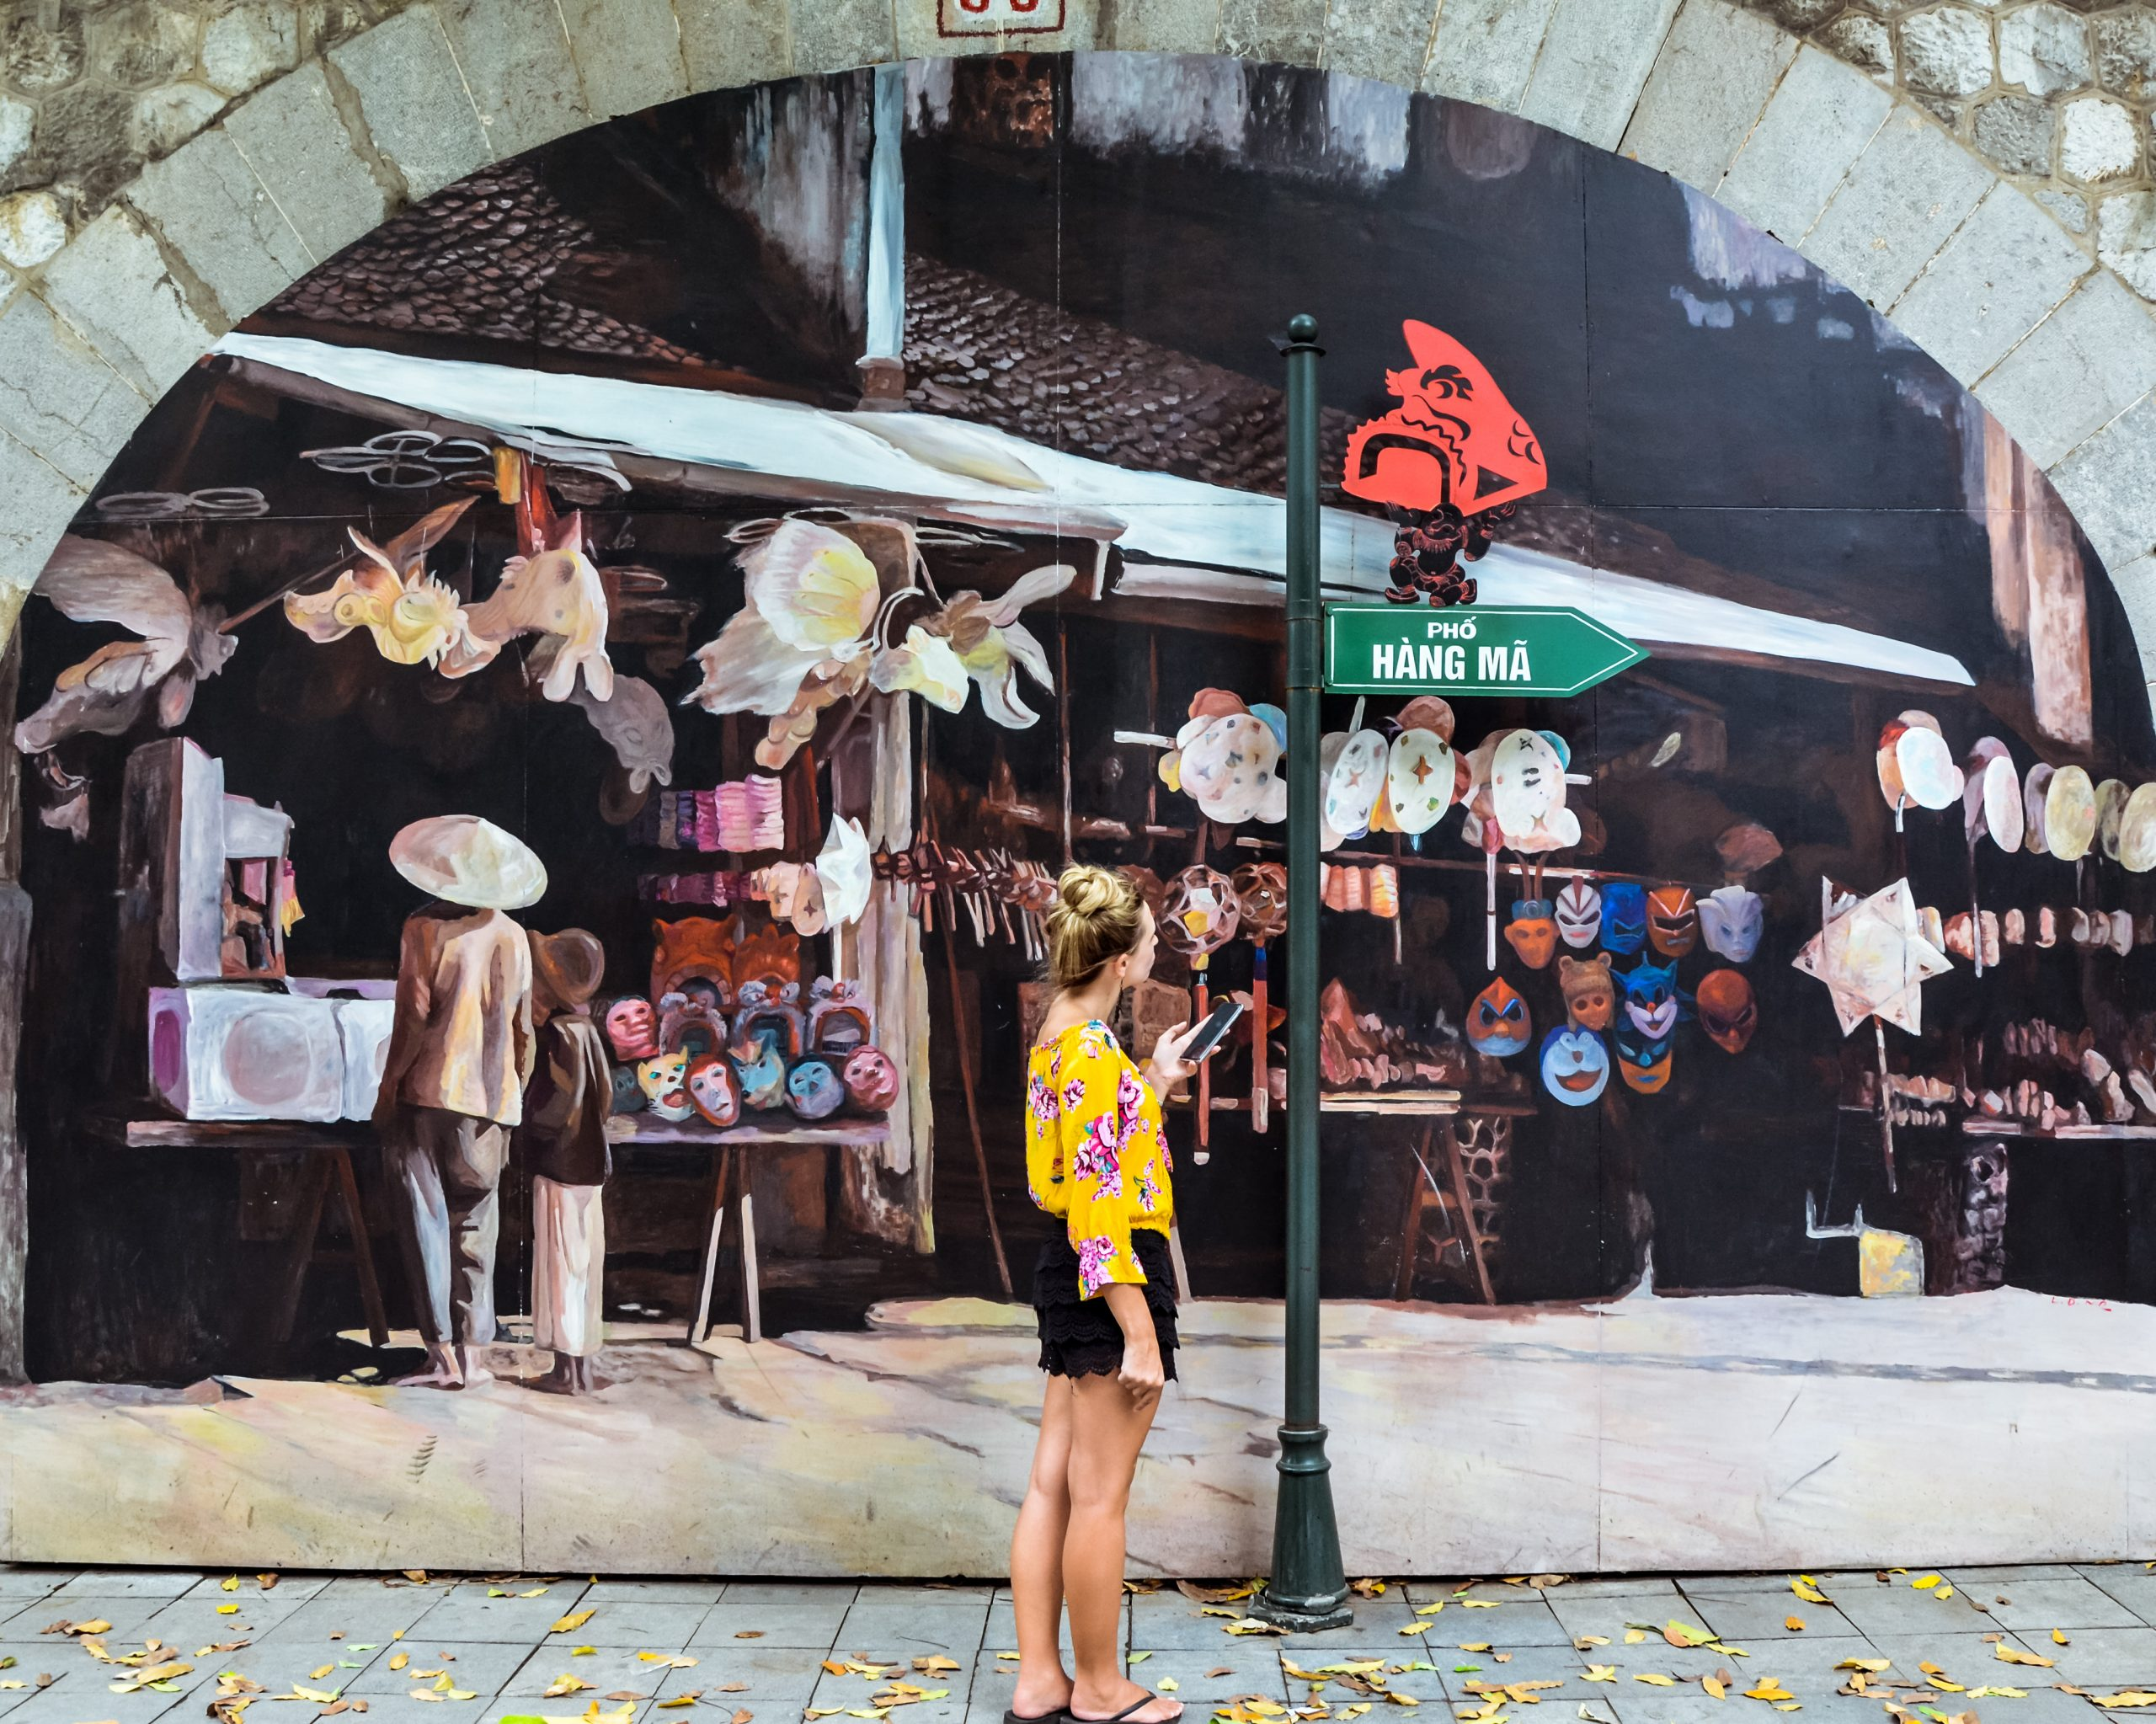 a girl with a yellow shirt is enjoying the street murals in Hanoi, Vietnam